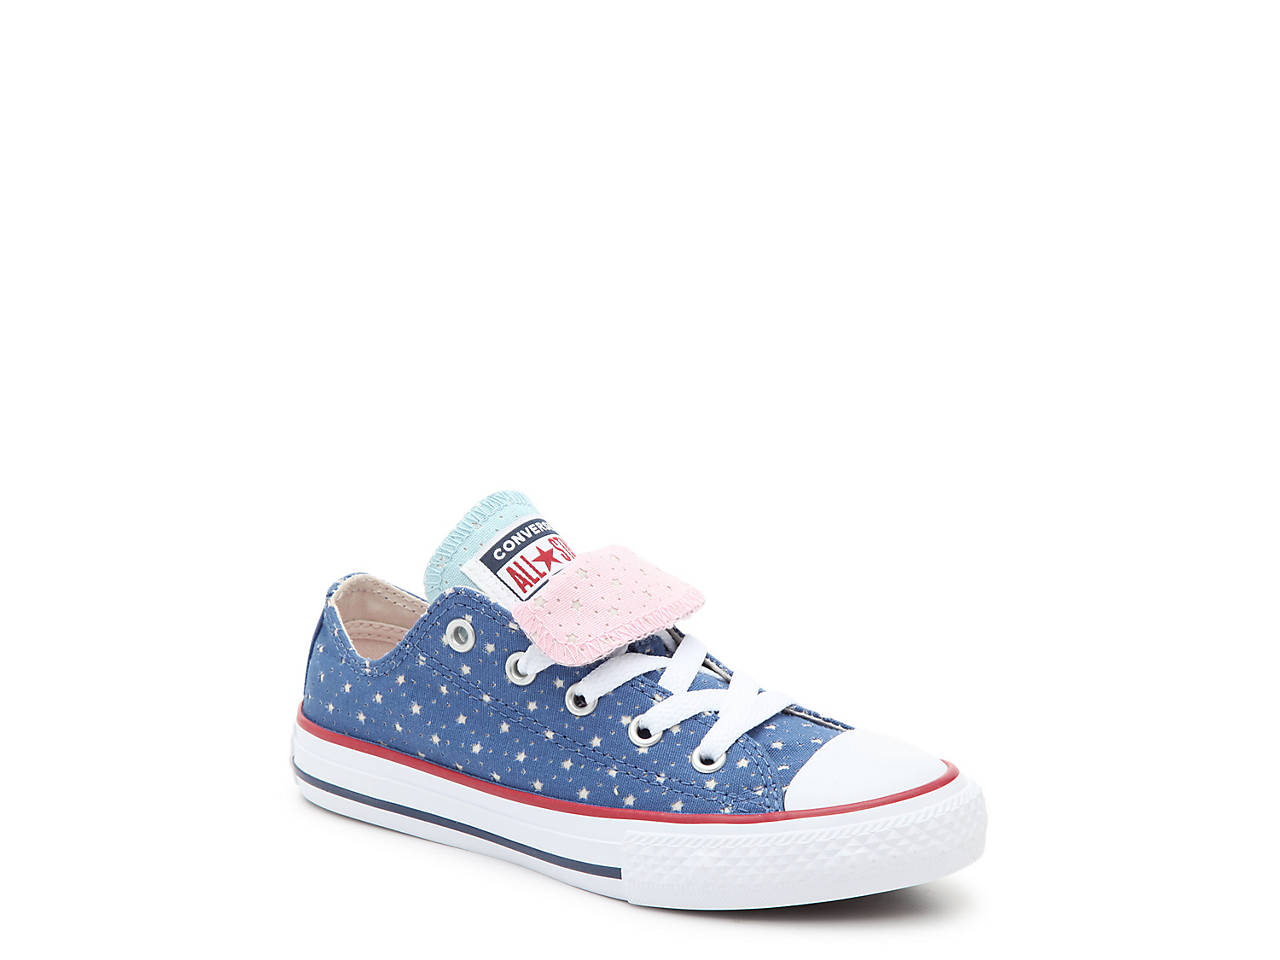 650091cfe643da Converse Chuck Taylor All Star Double Tongue Toddler   Youth Sneaker ...